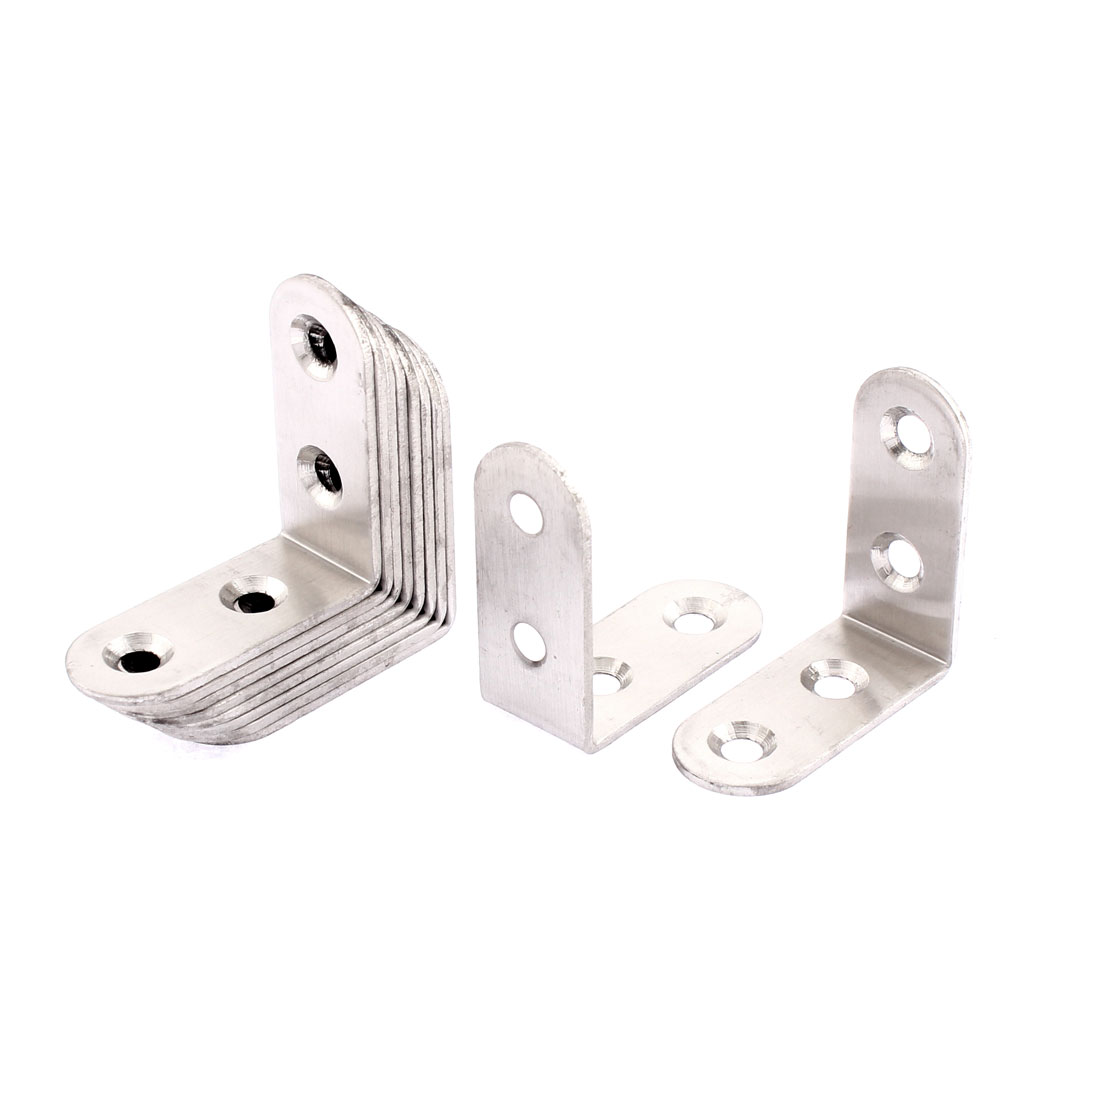 Stainless Steel L Shaped Angle Bracket 40 x 40 x 17mm 10pcs